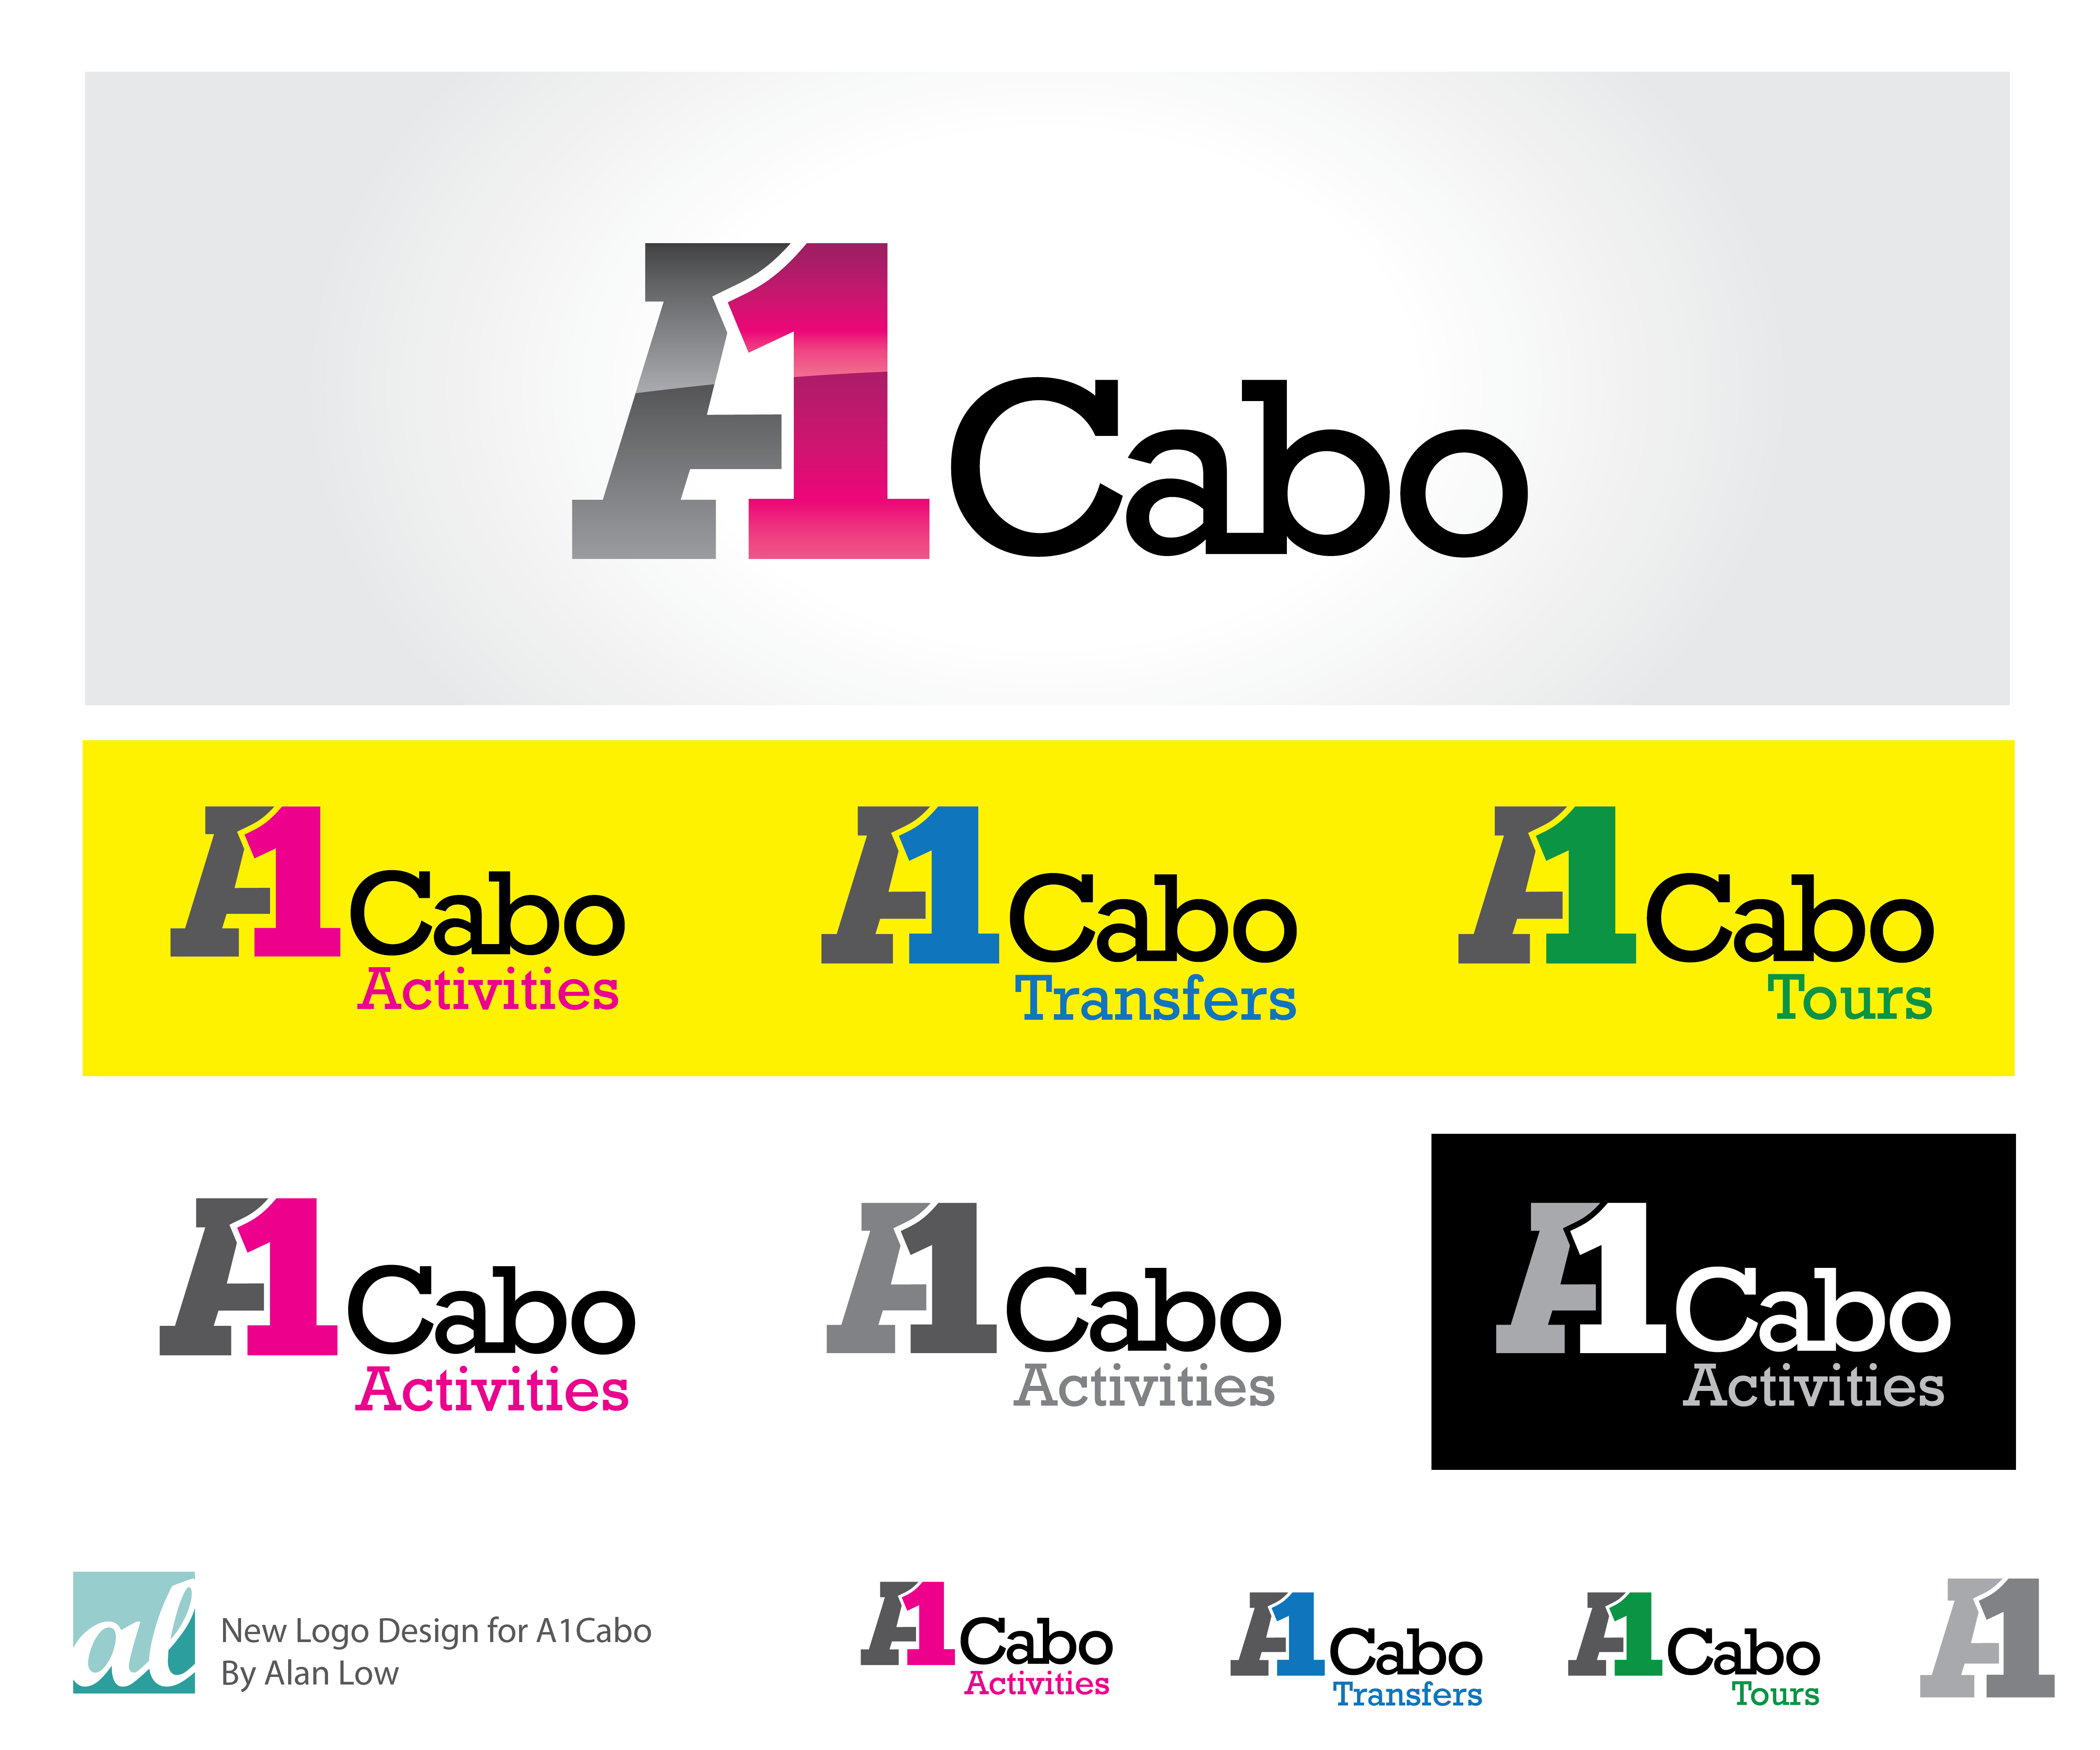 Logo Design by Alan Low - Entry No. 112 in the Logo Design Contest Inspiring Logo Design for A1Cabo.com.